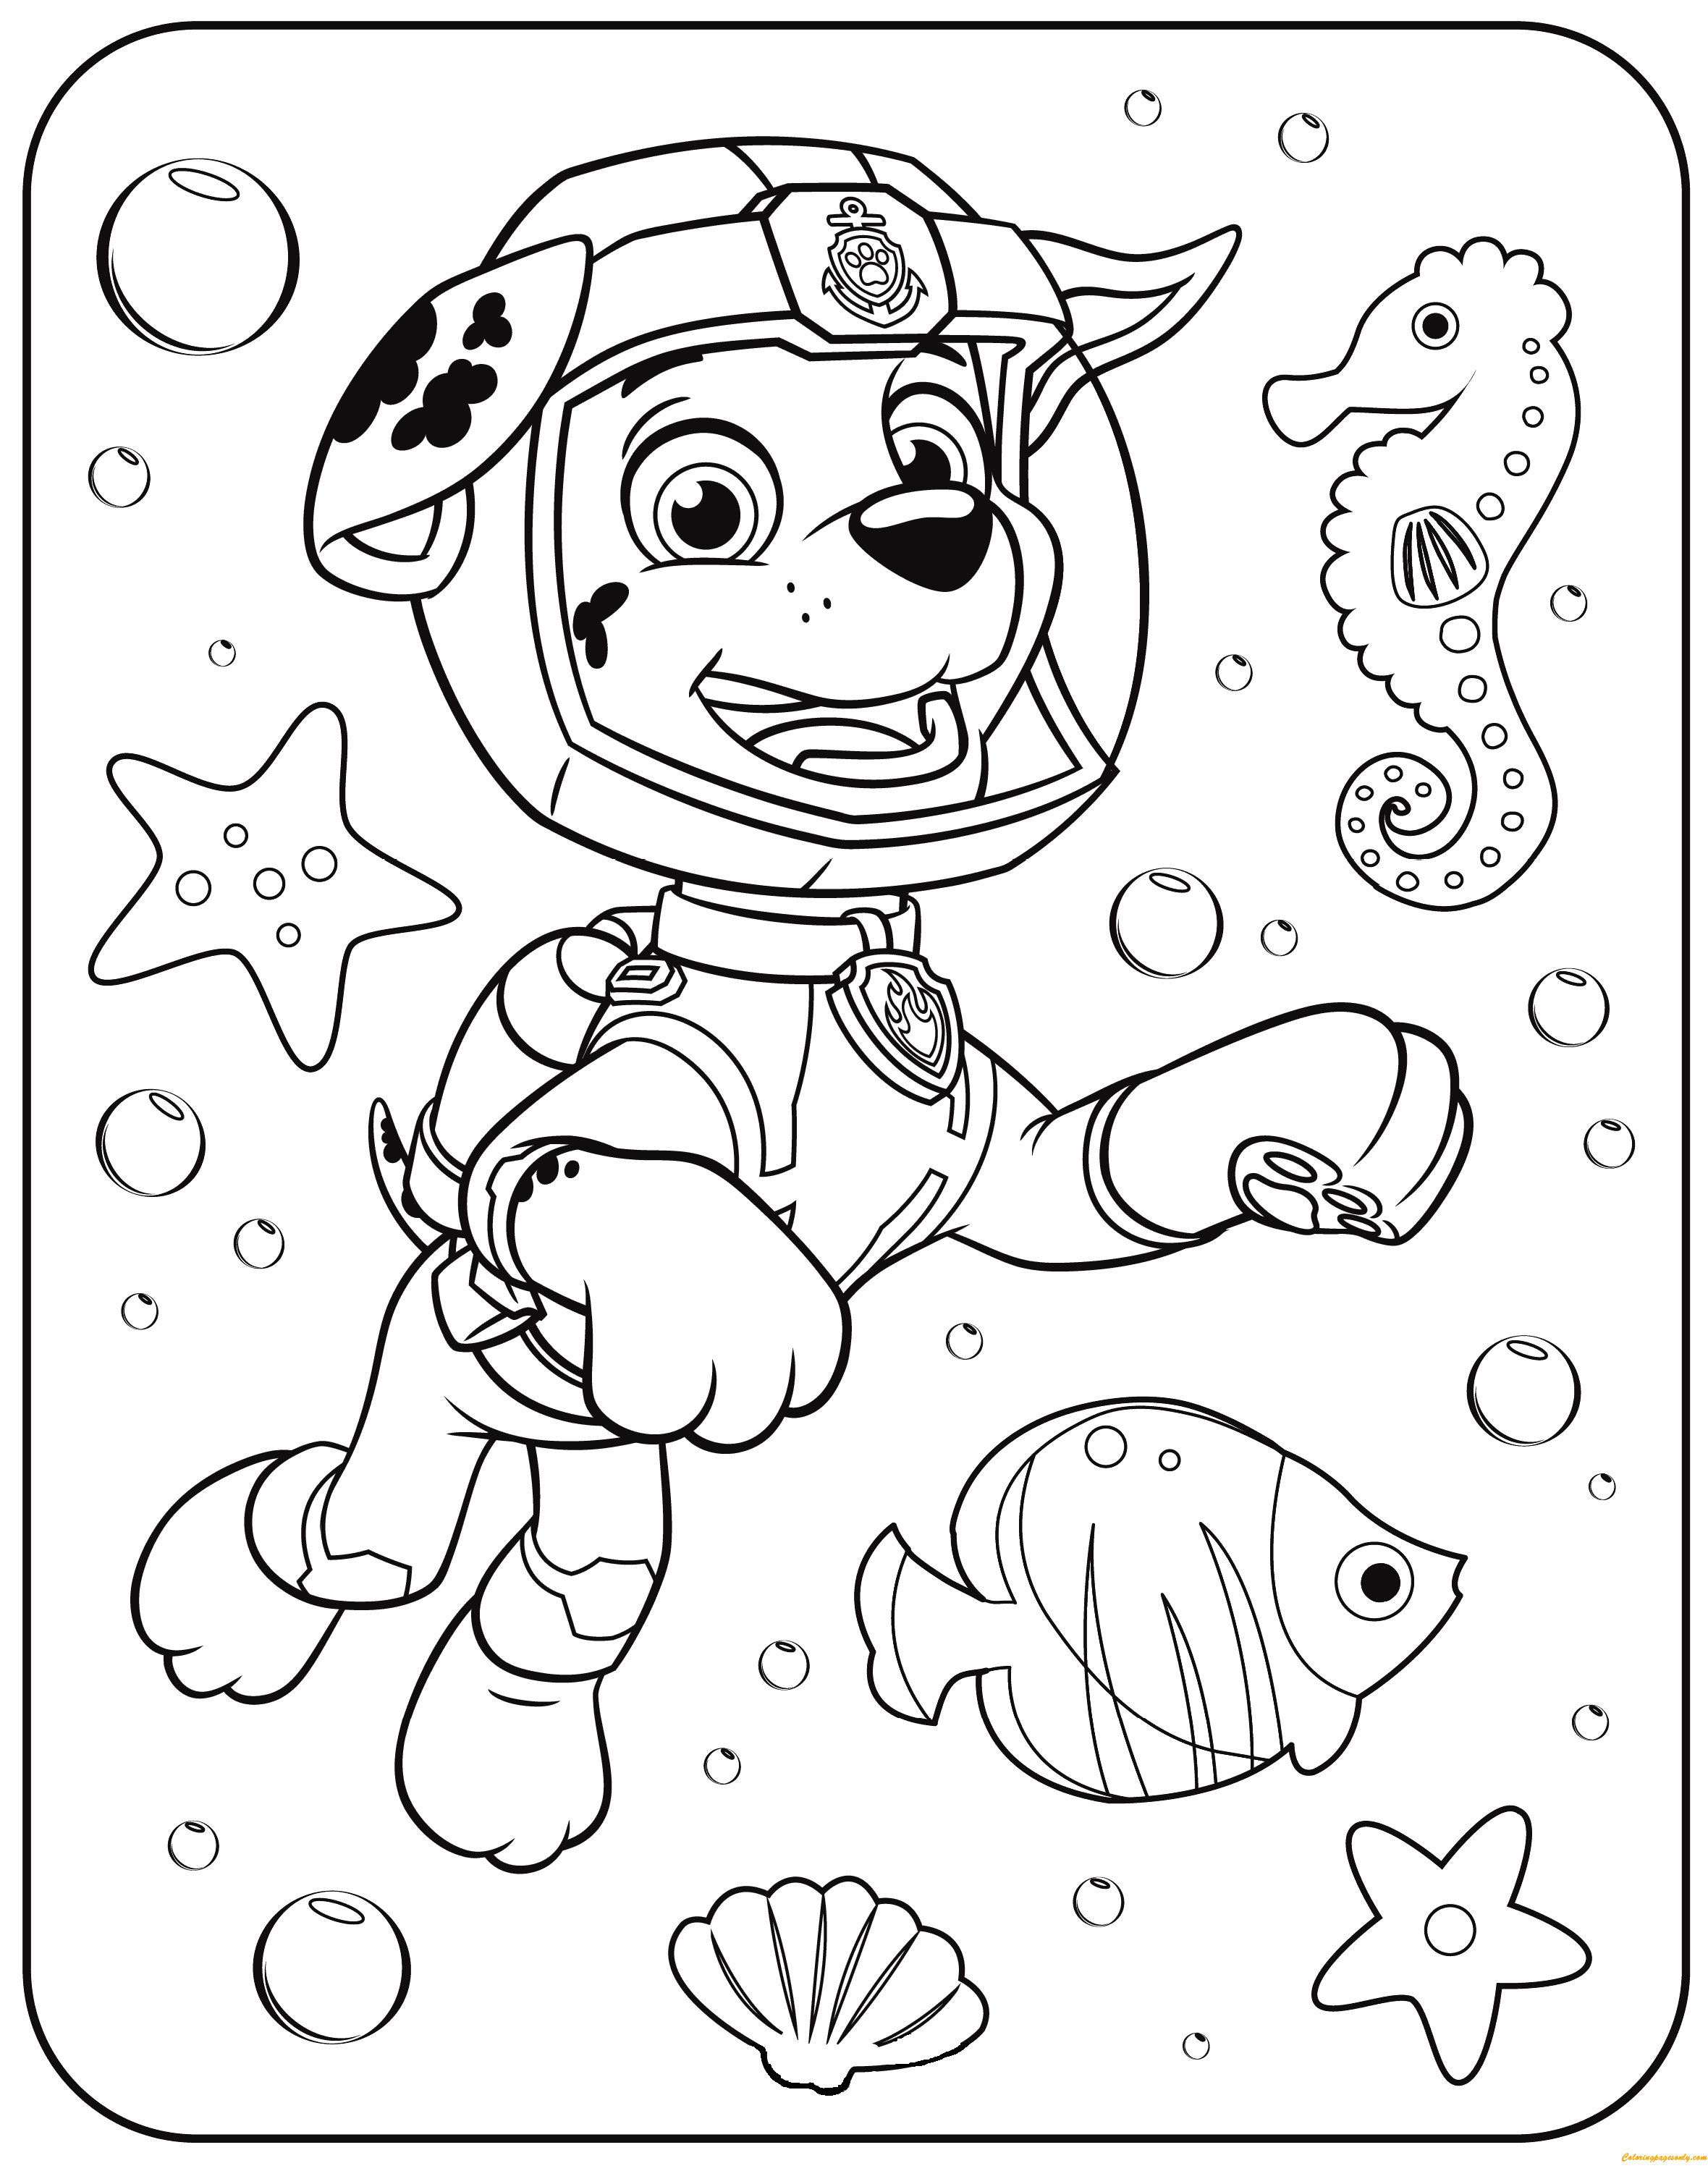 Paw Patrol Marshall Underwater Coloring Page - Free Coloring Pages ...